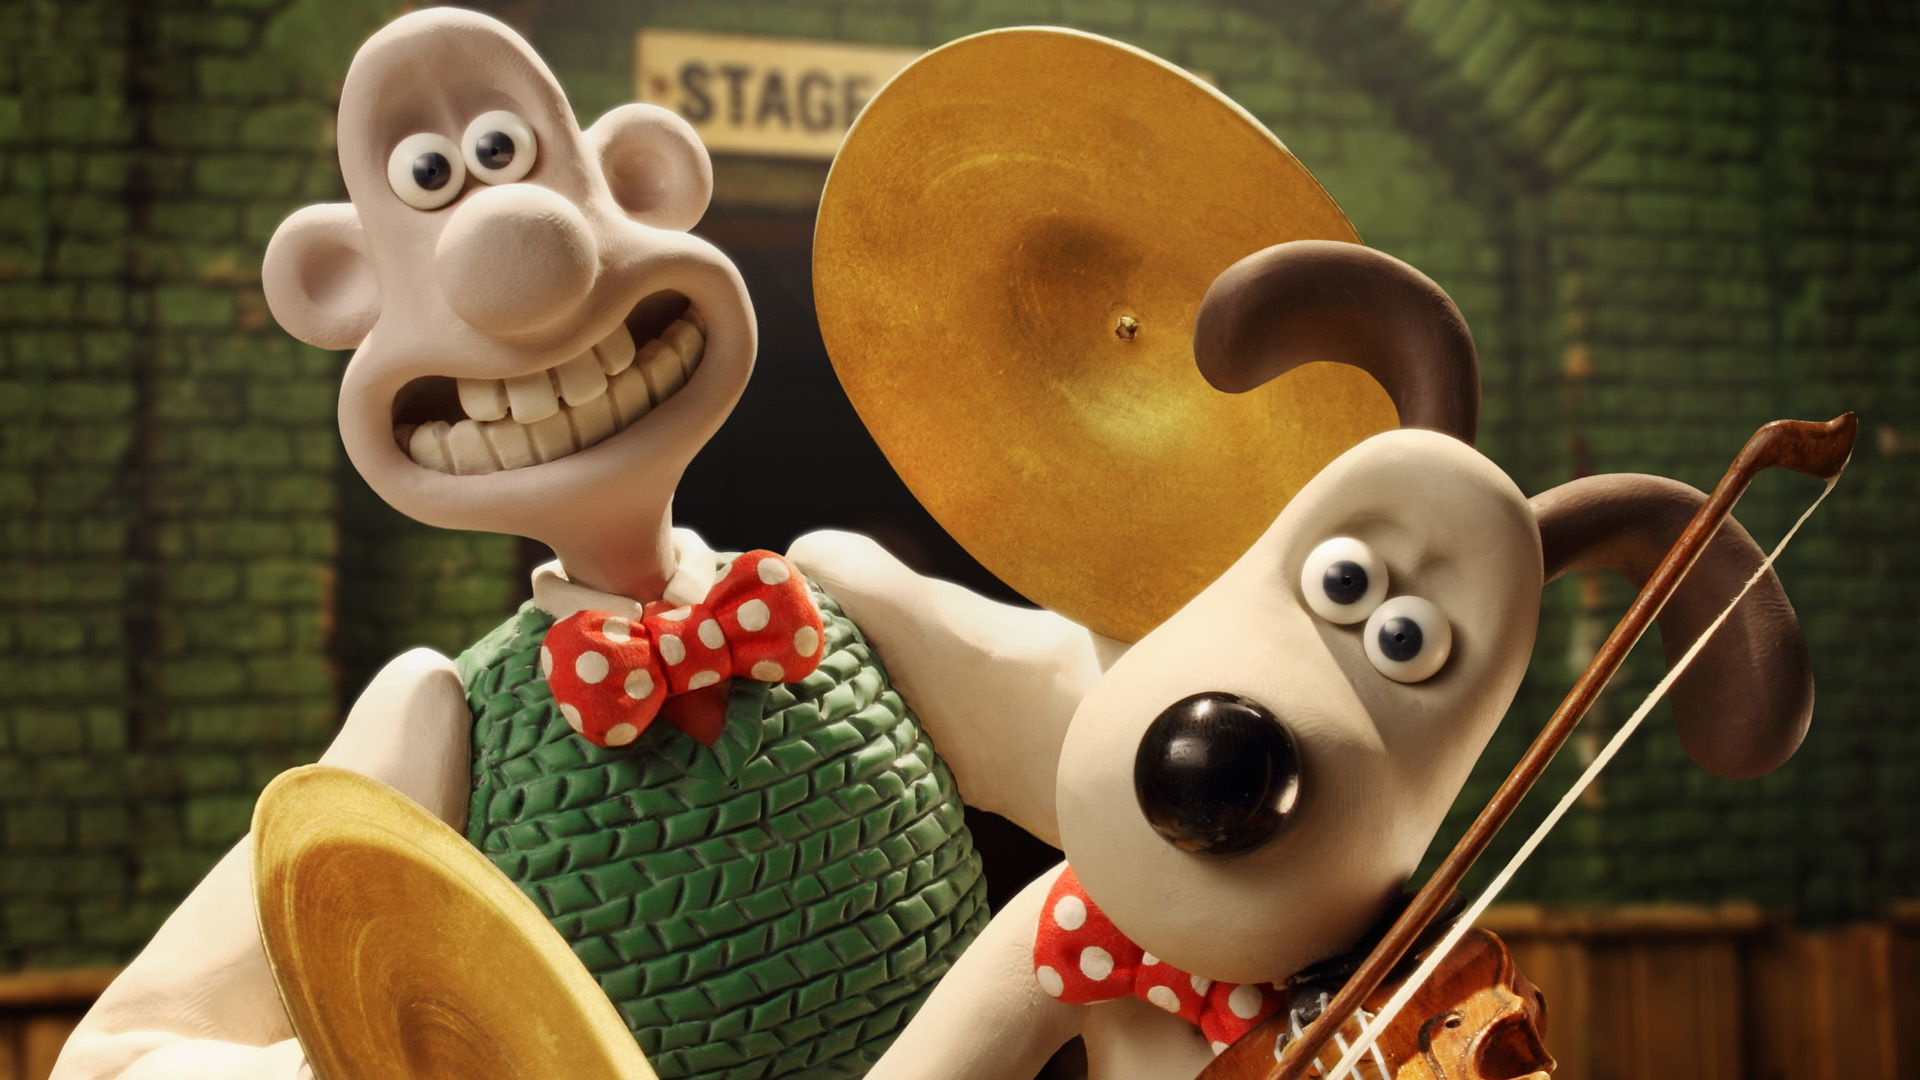 wallace-ve-gromit